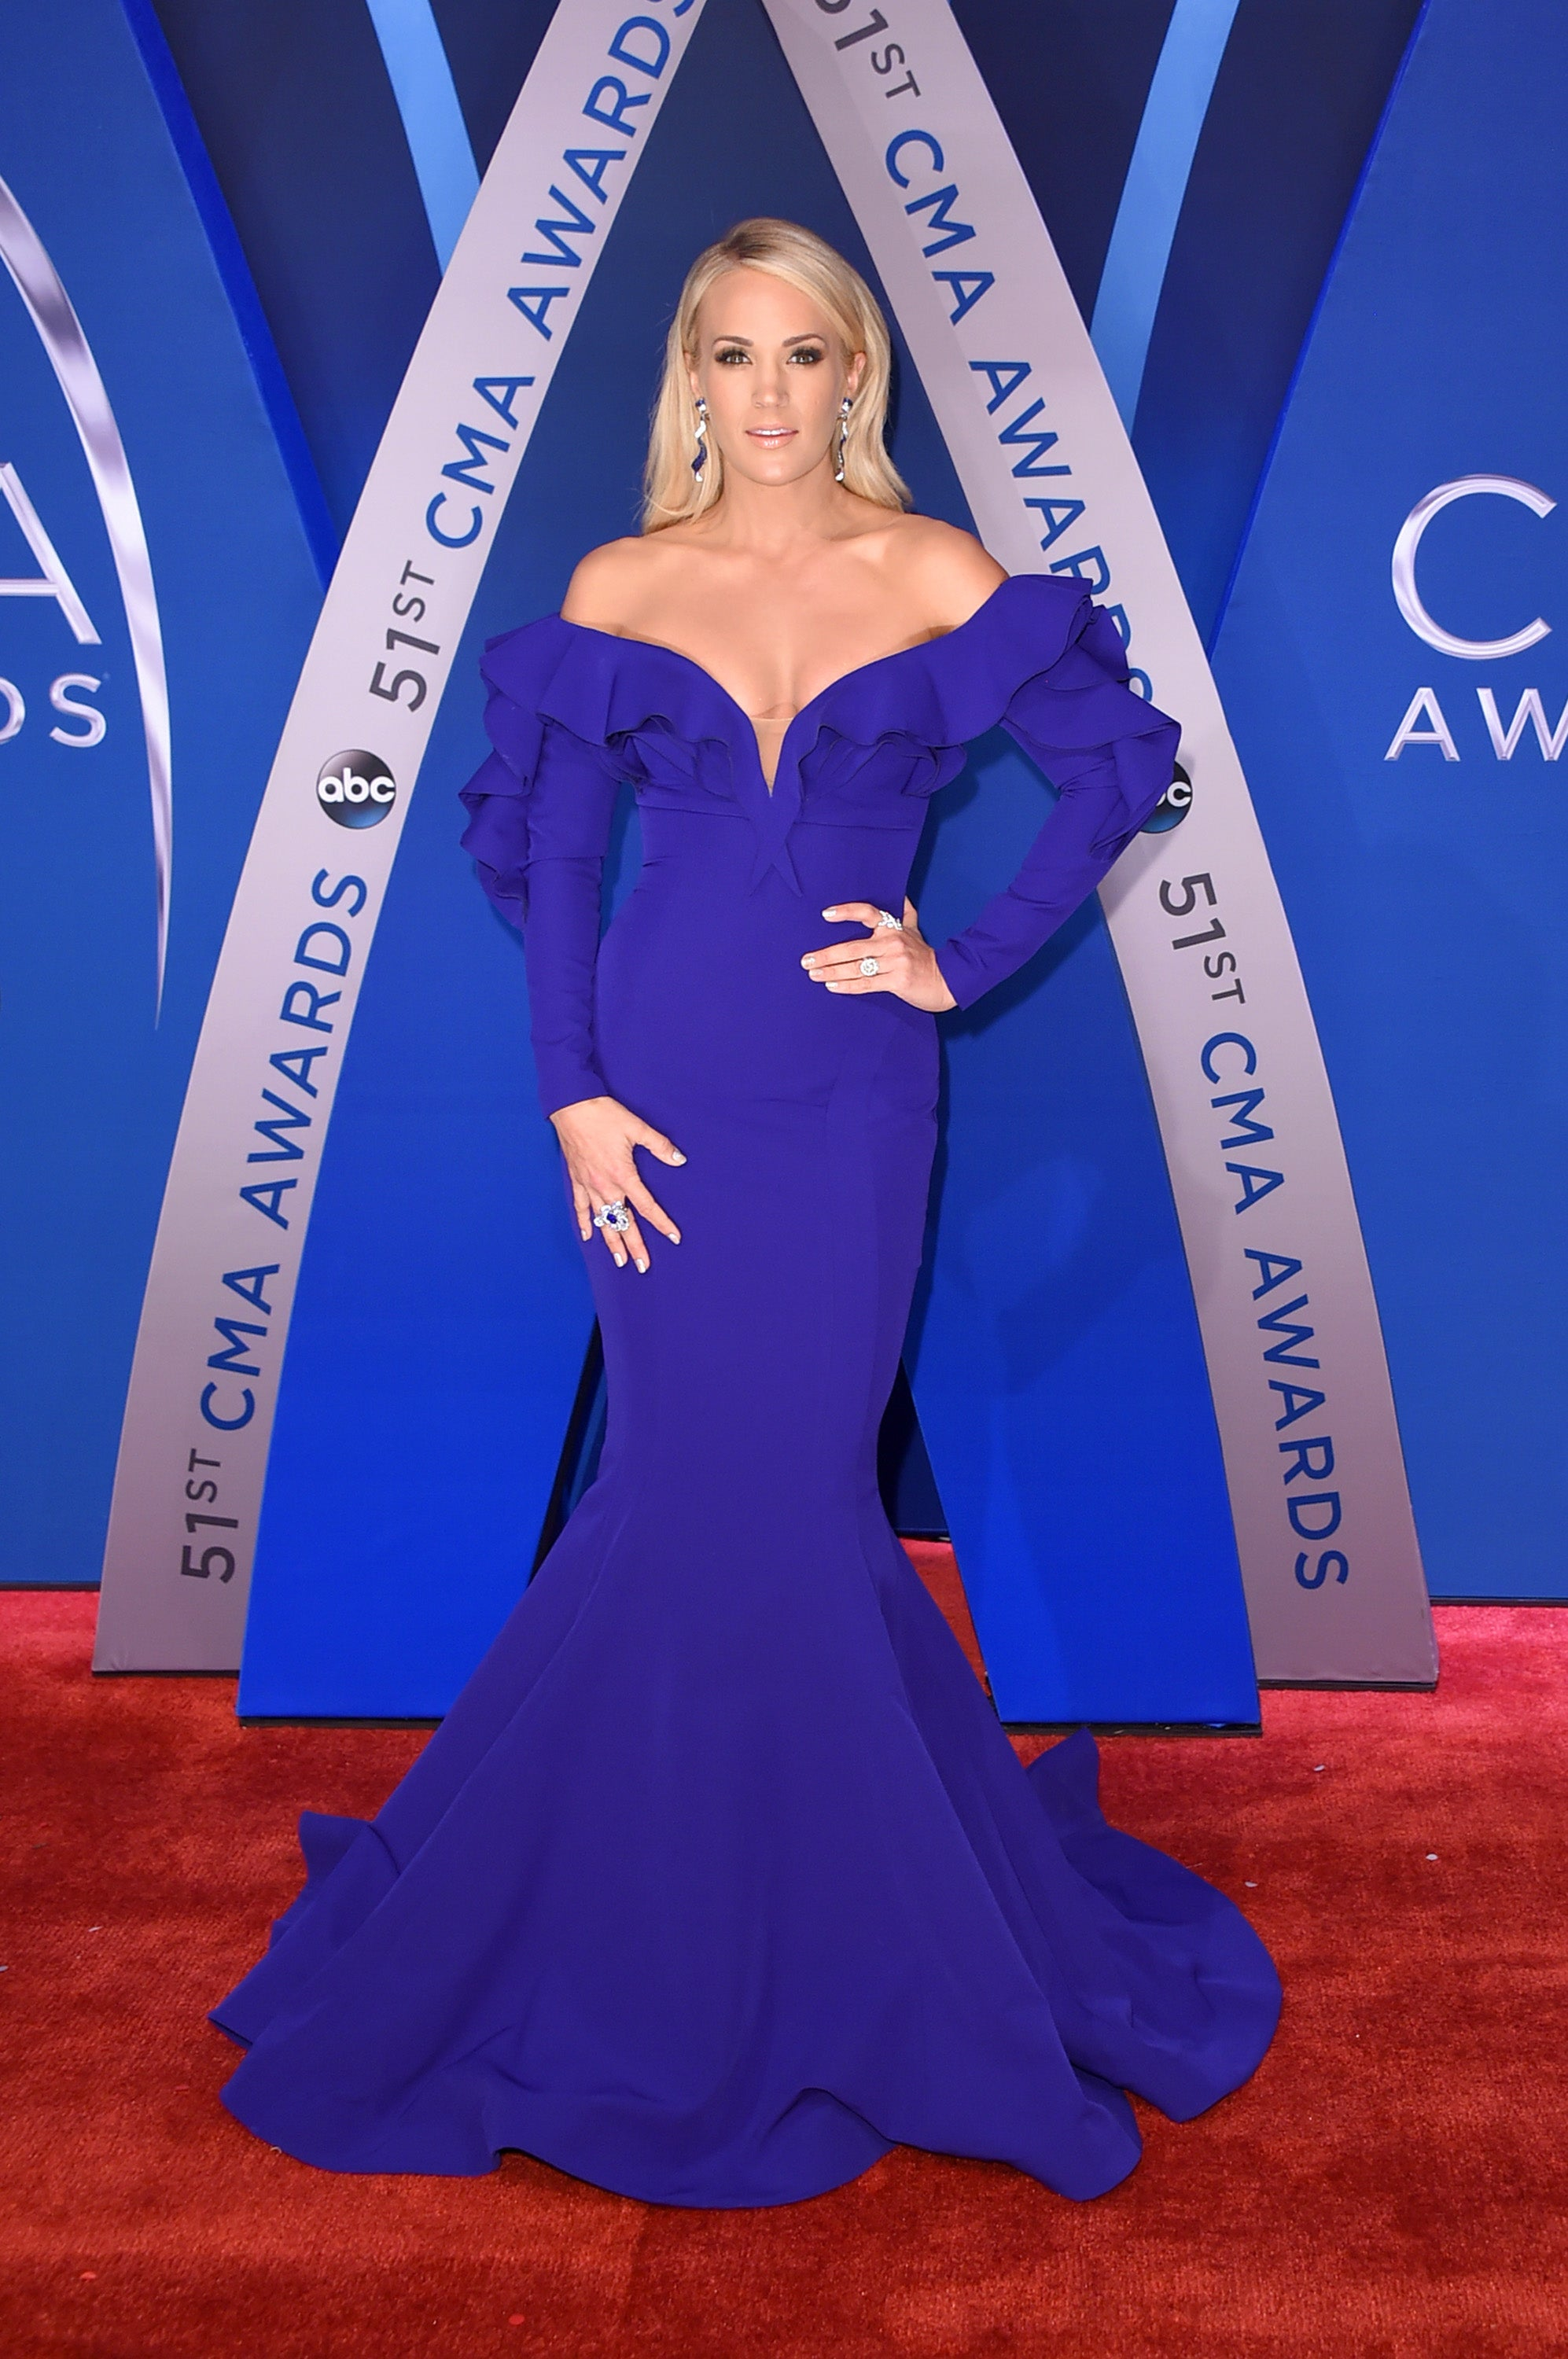 Carrie Underwood Slays The Cma Awards In 11 Stunning